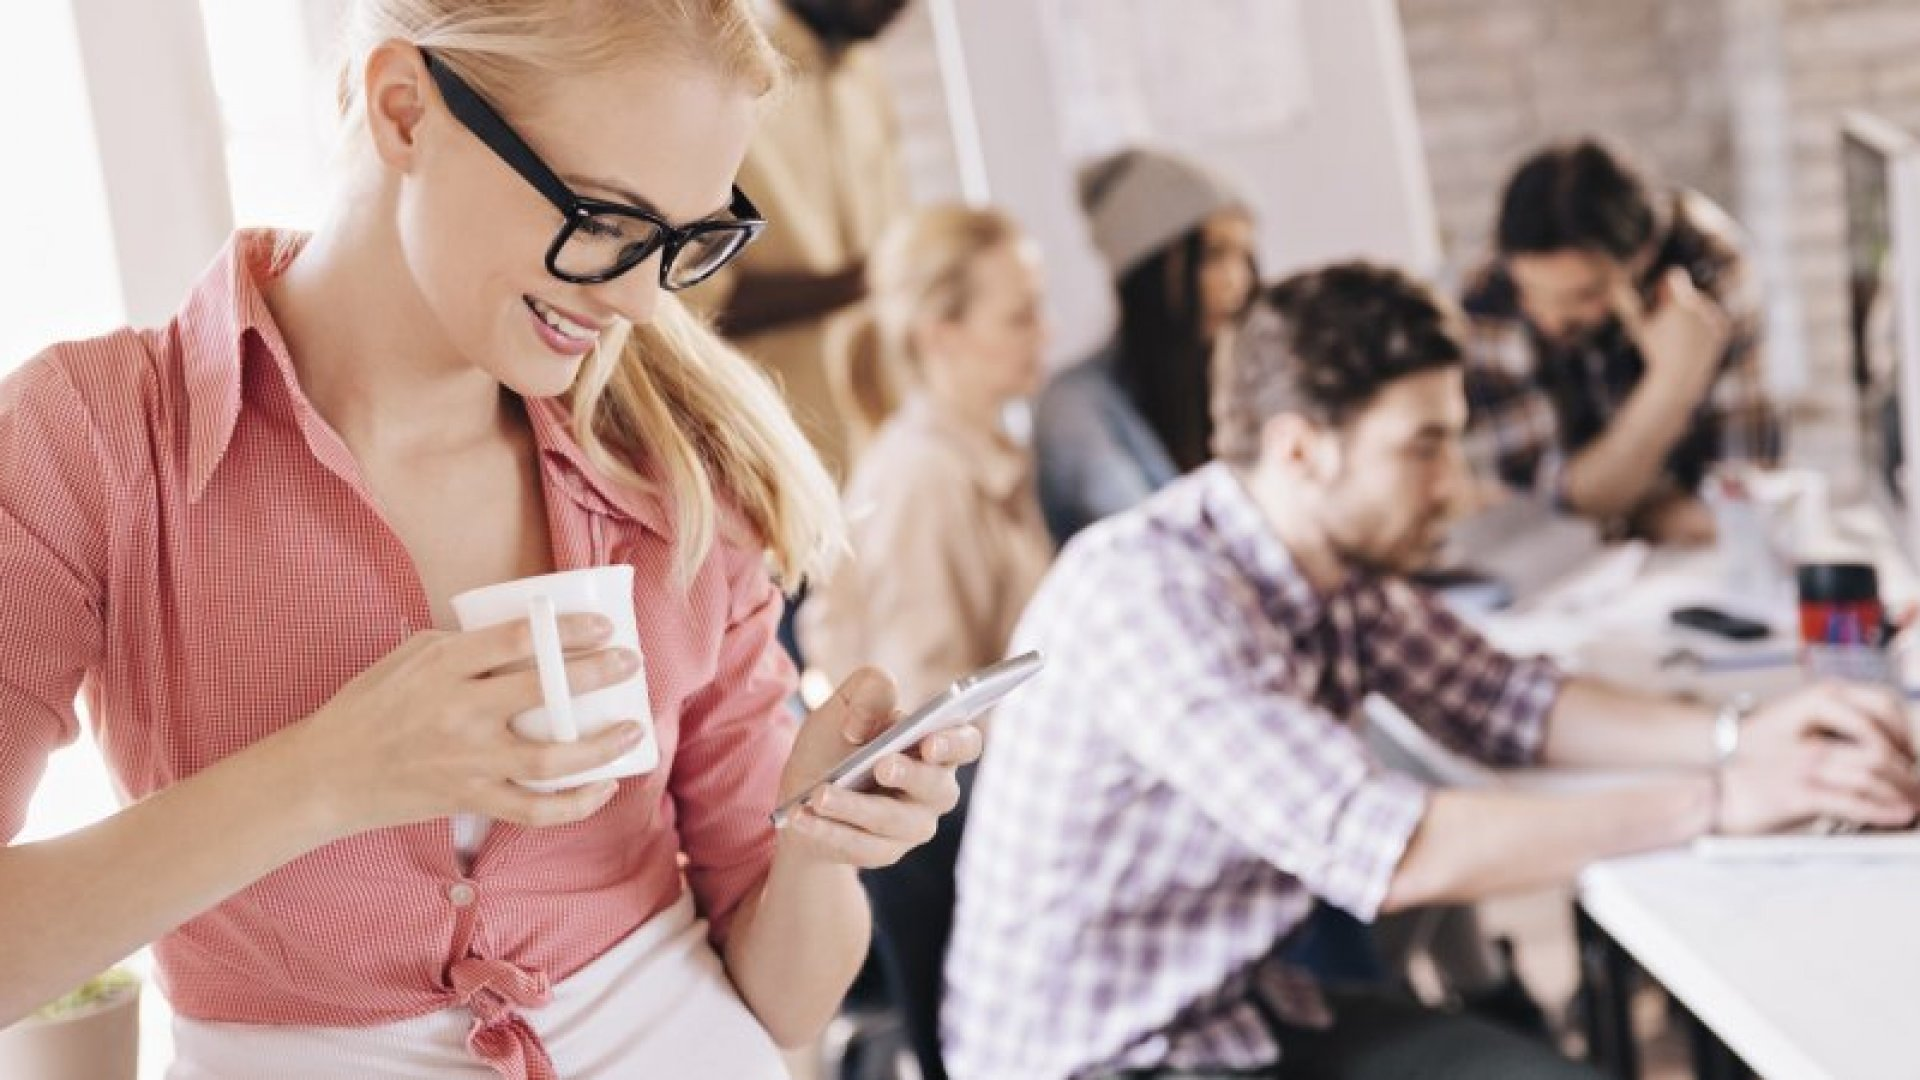 4 Unconventional Ways to Keep Millennials From Jumping Ship